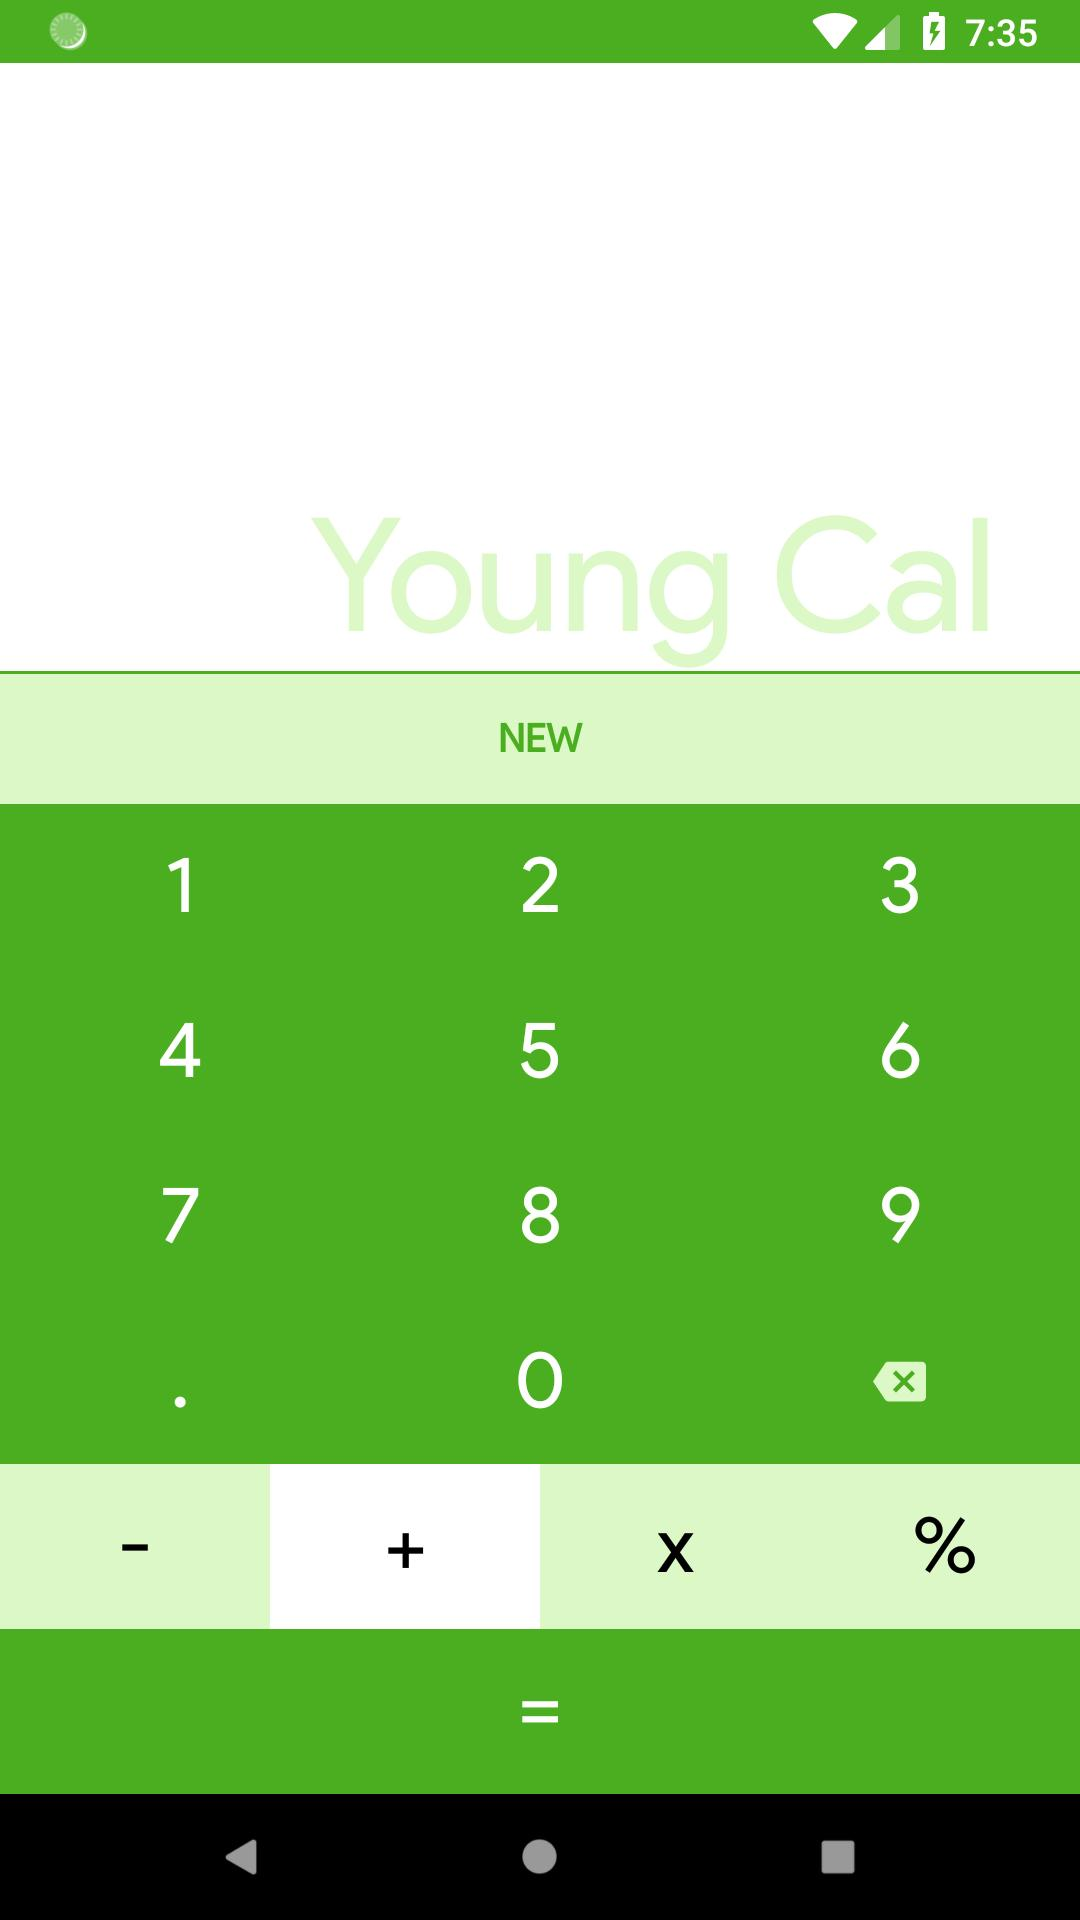 A Young Cal - A Simple Calculator - Made In Kotlin for